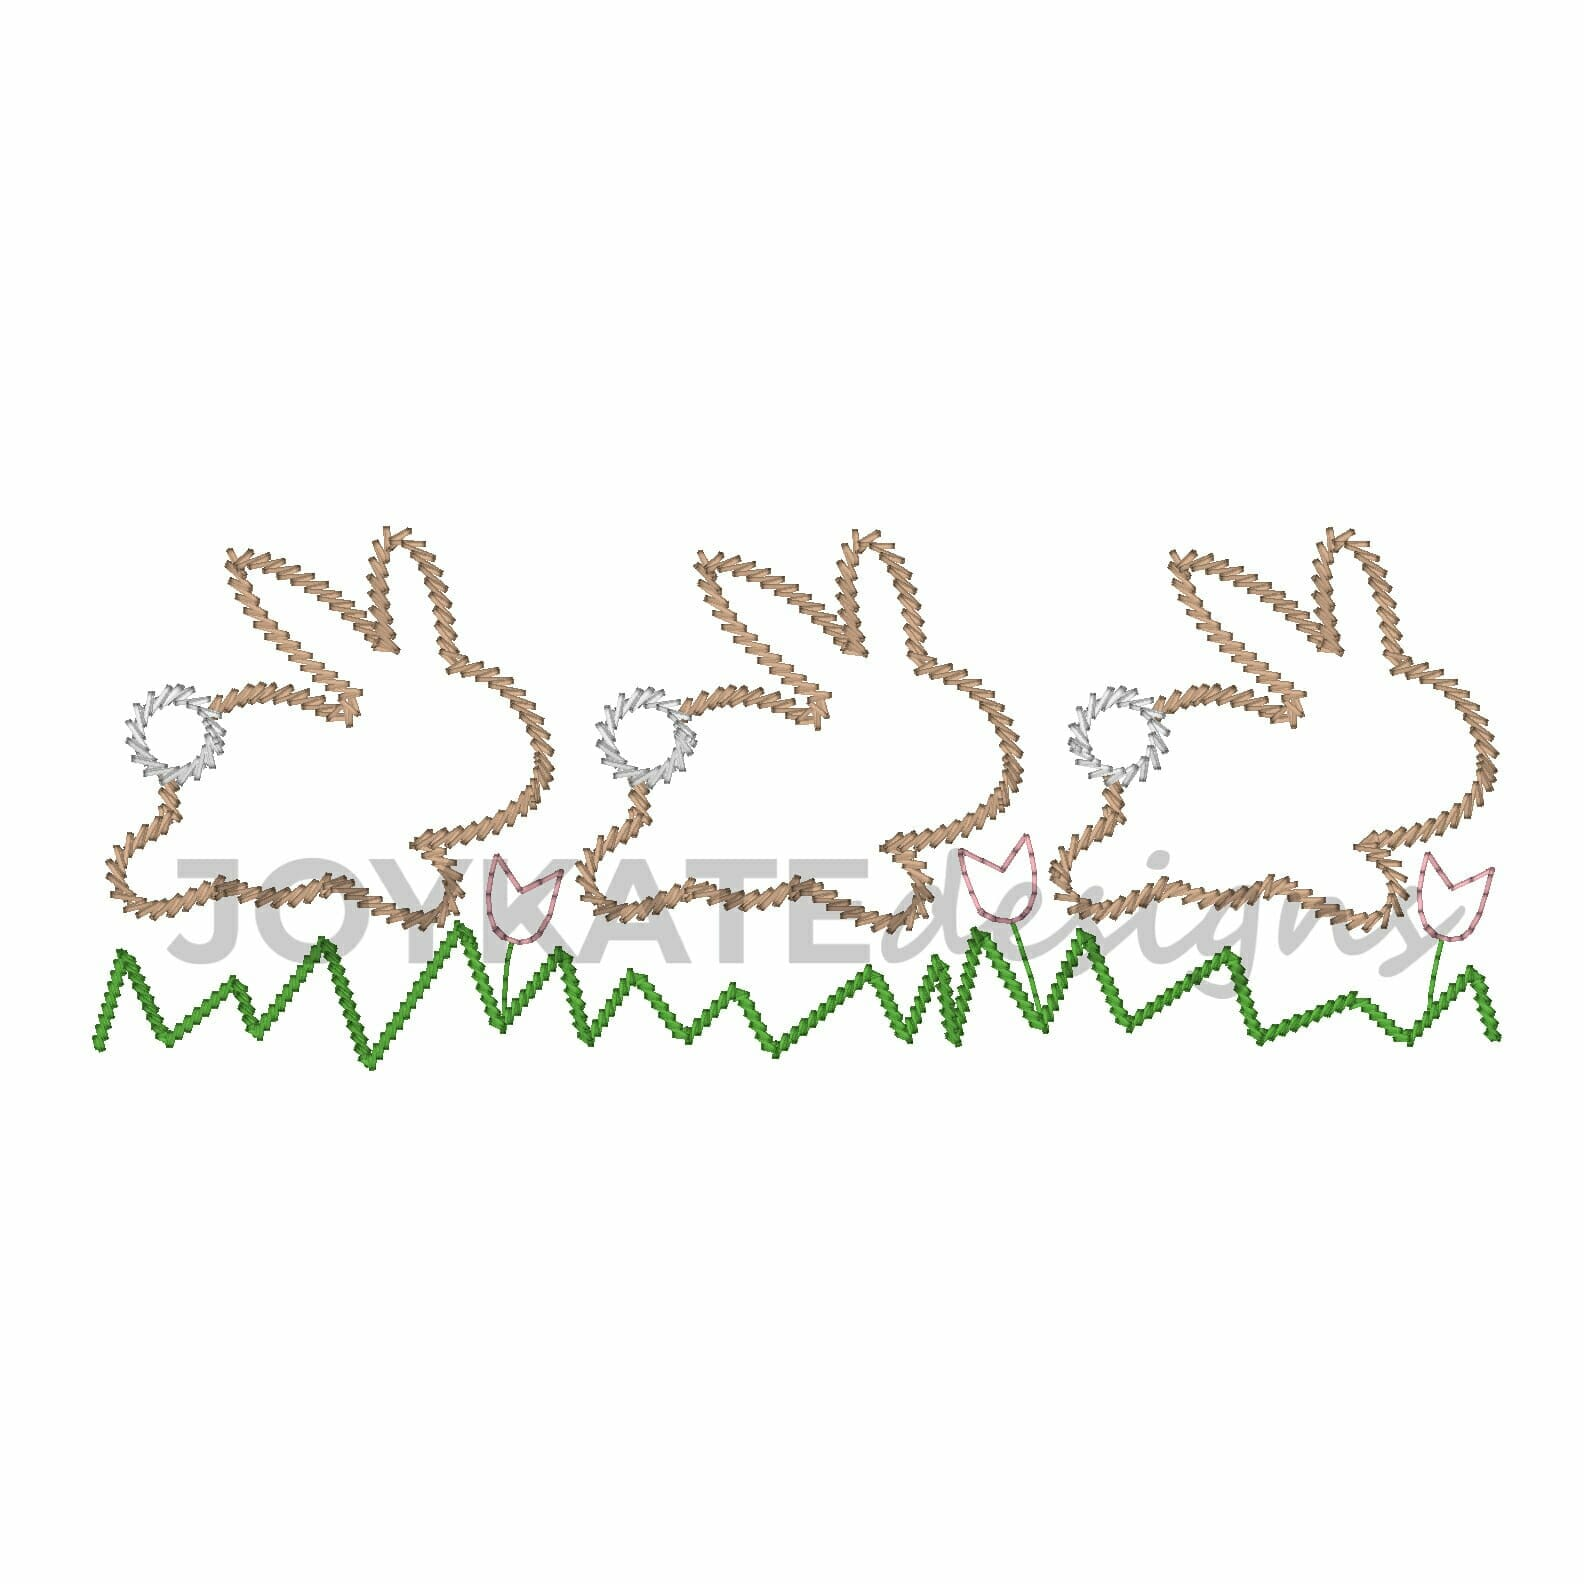 Running bunnies vintage stitch embroidery design joy